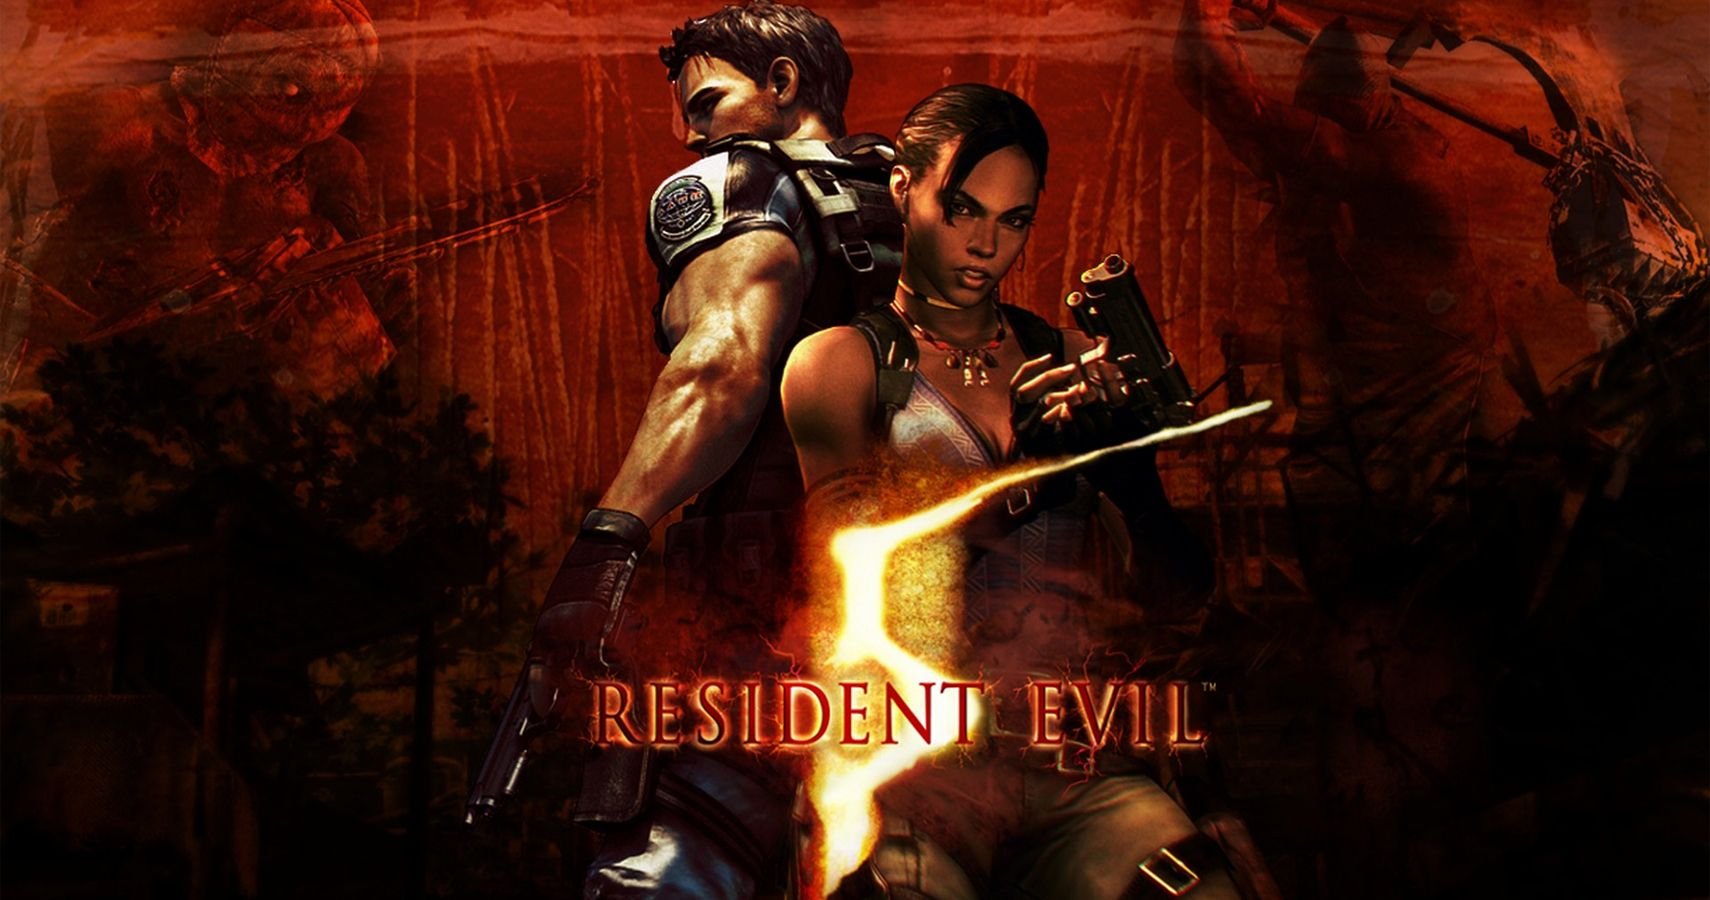 Resident Evil 5 15 Reasons It S One Of The Best Games In The Series